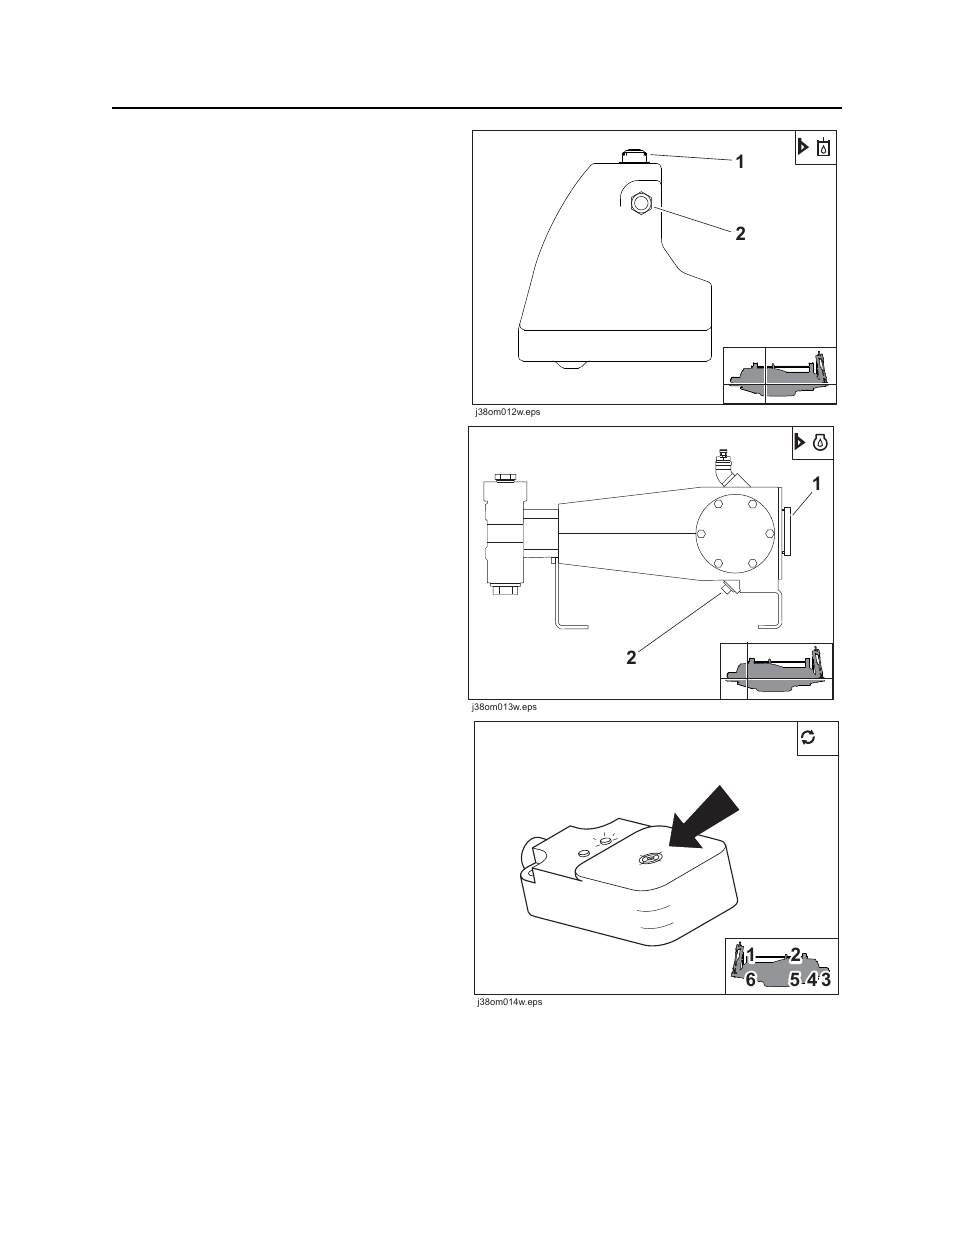 Jt20 operator's manual | Ditch Witch JT20 User Manual | Page 165 / 195